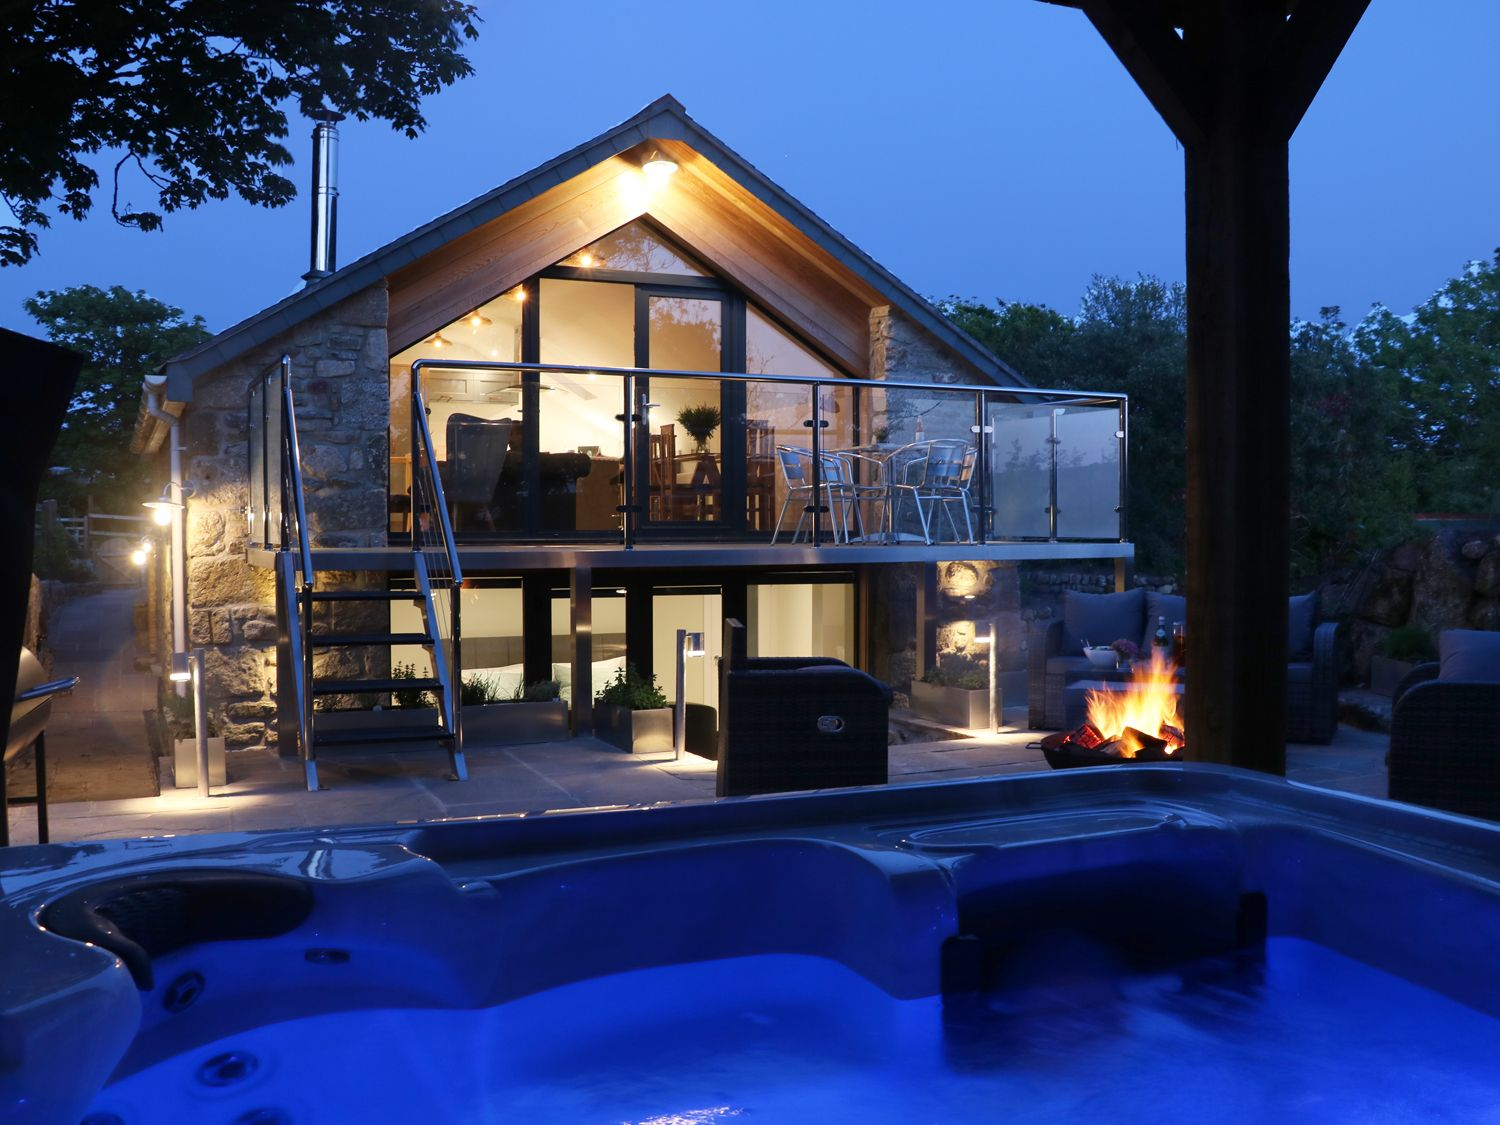 Lodges With Hot Tubs For New Year S Eve Lodges With Hot Tubs